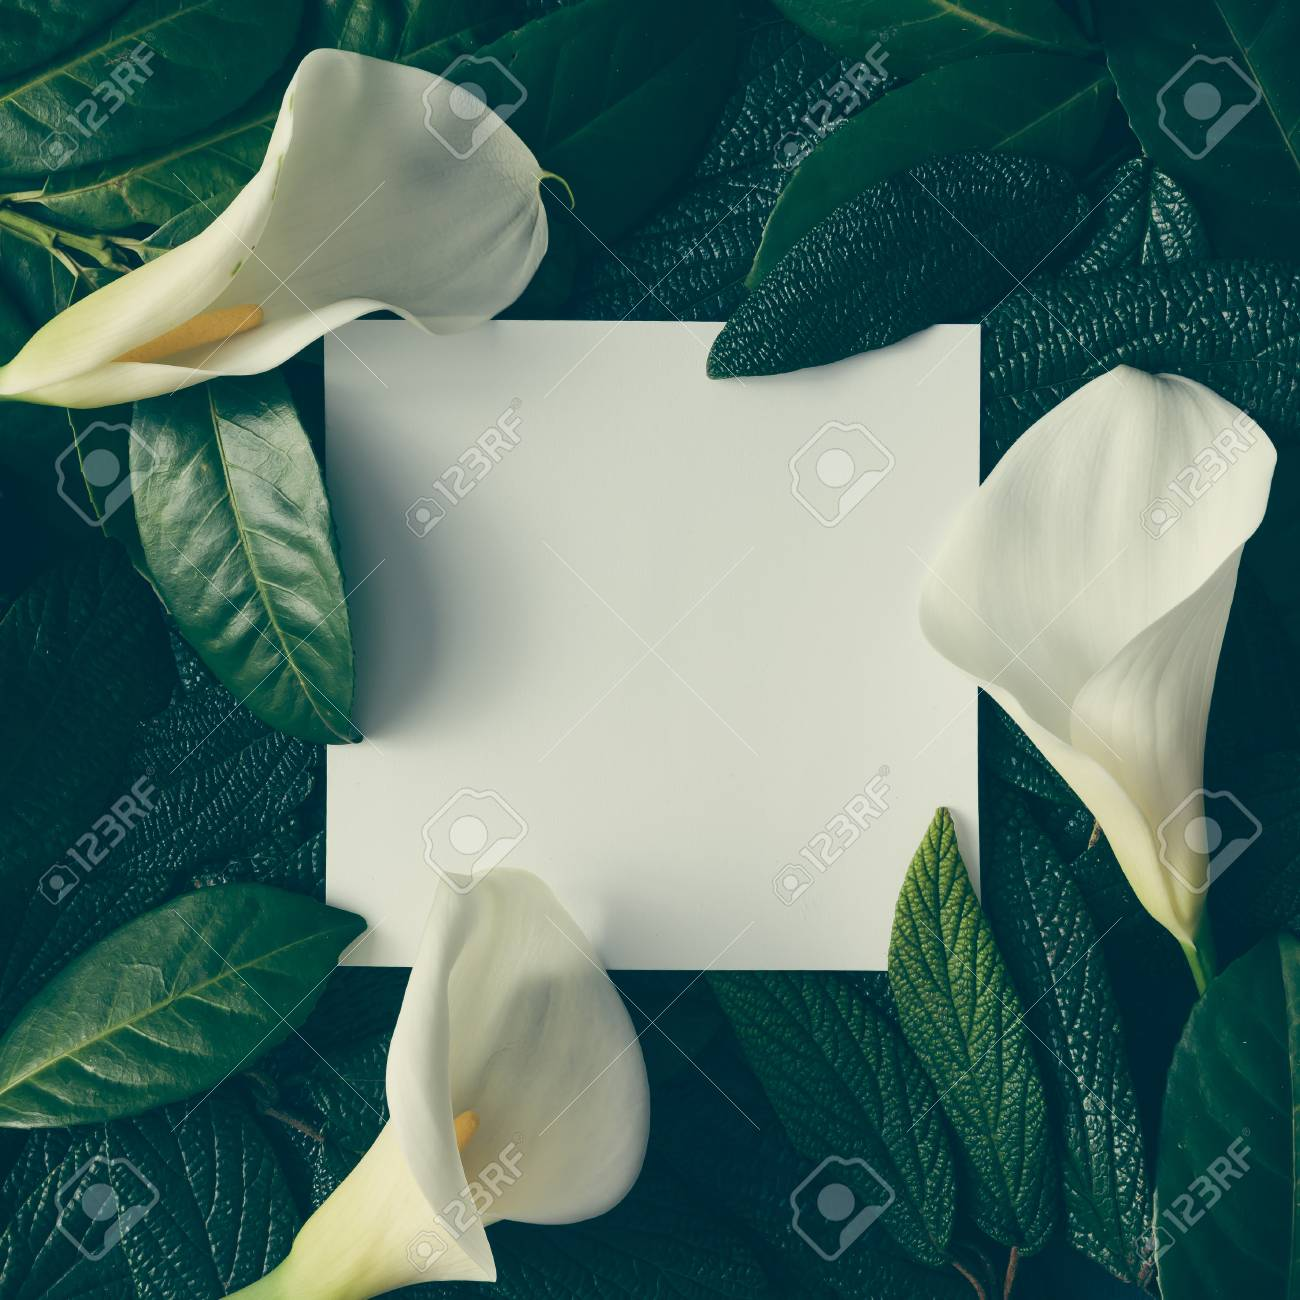 Creative layout made of green leaves and white flowers with paper creative layout made of green leaves and white flowers with paper card note flat lay mightylinksfo